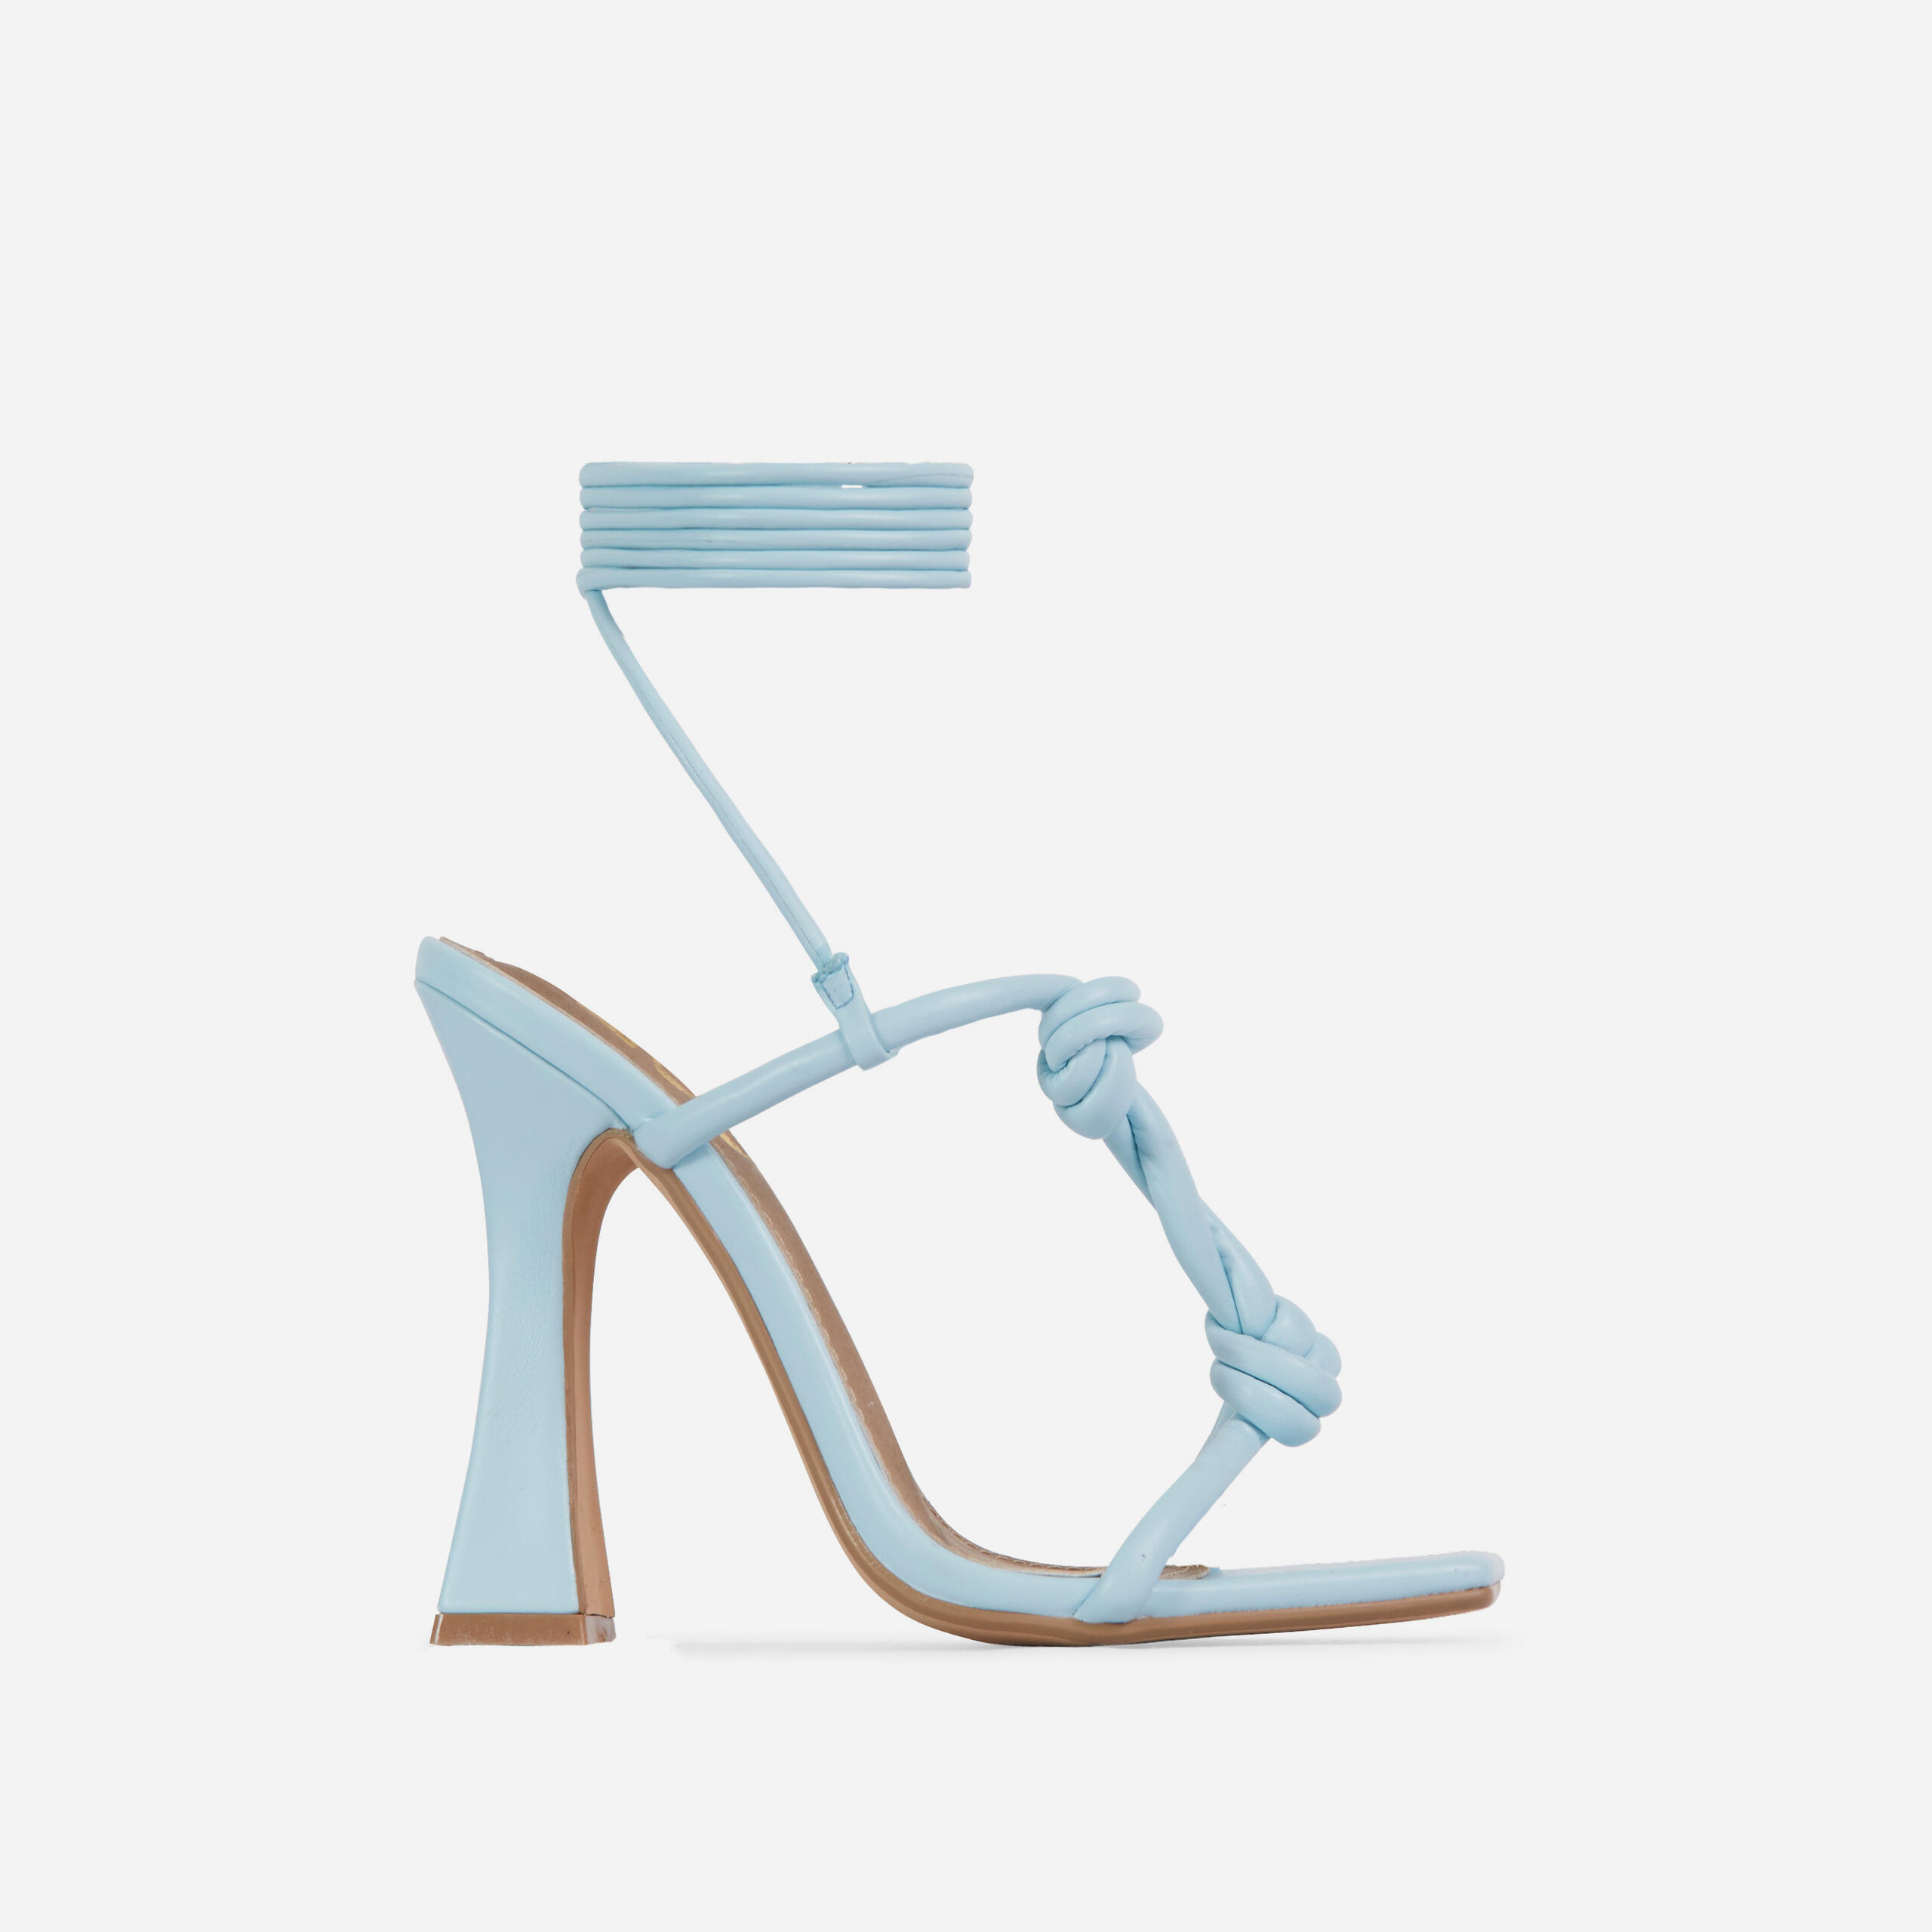 Set-Free Knotted Detail Lace Square Toe Flared Block Heel In Blue Faux Leather, Blue